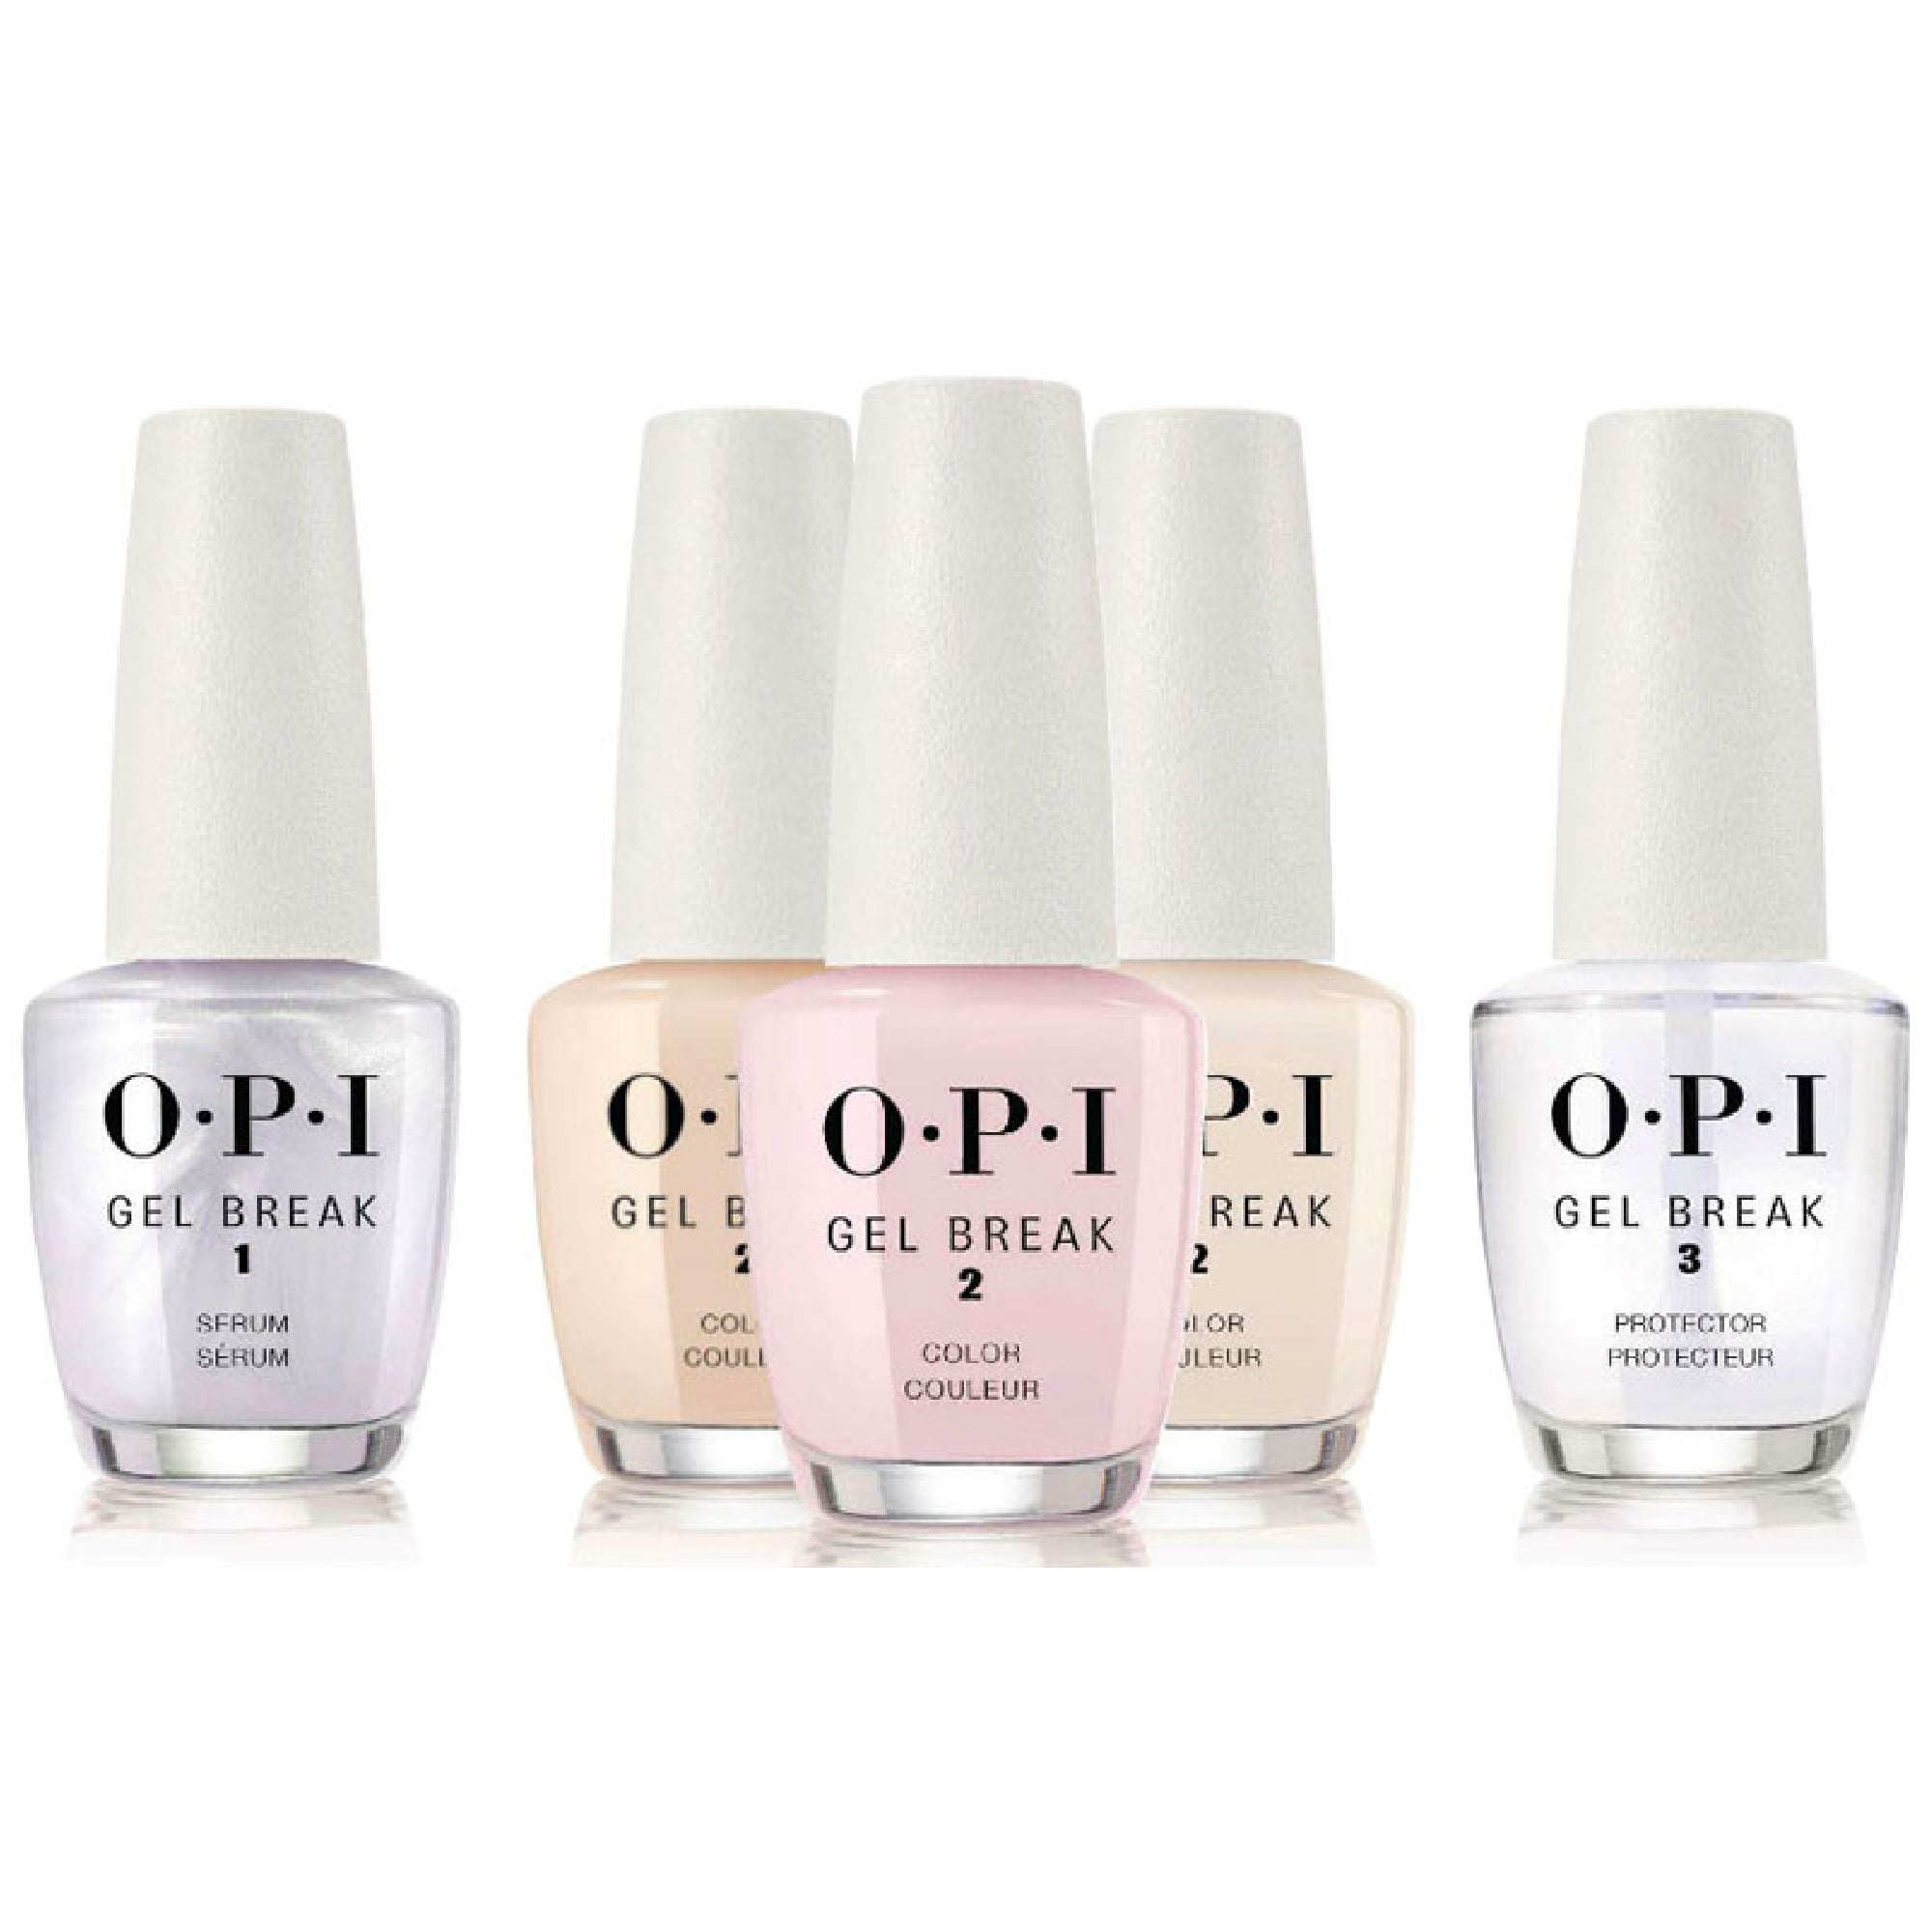 OPI Gel Break Set - Treatment System 5 Piece Kit (5 x 15ml)